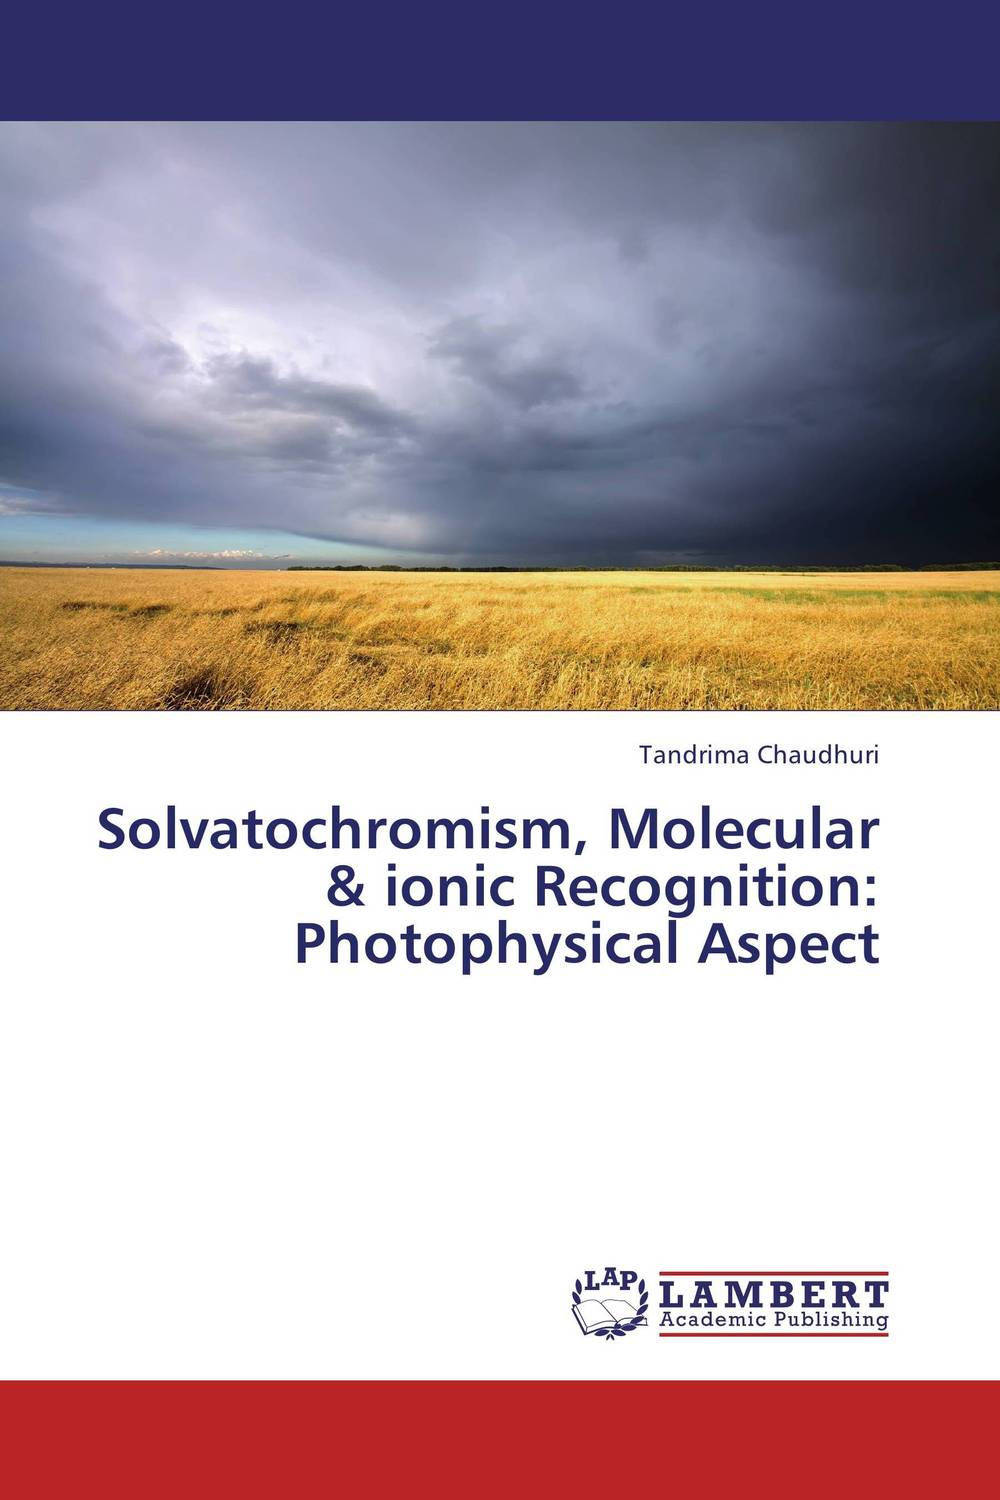 Solvatochromism, Molecular & ionic Recognition: Photophysical Aspect sociologies of interaction